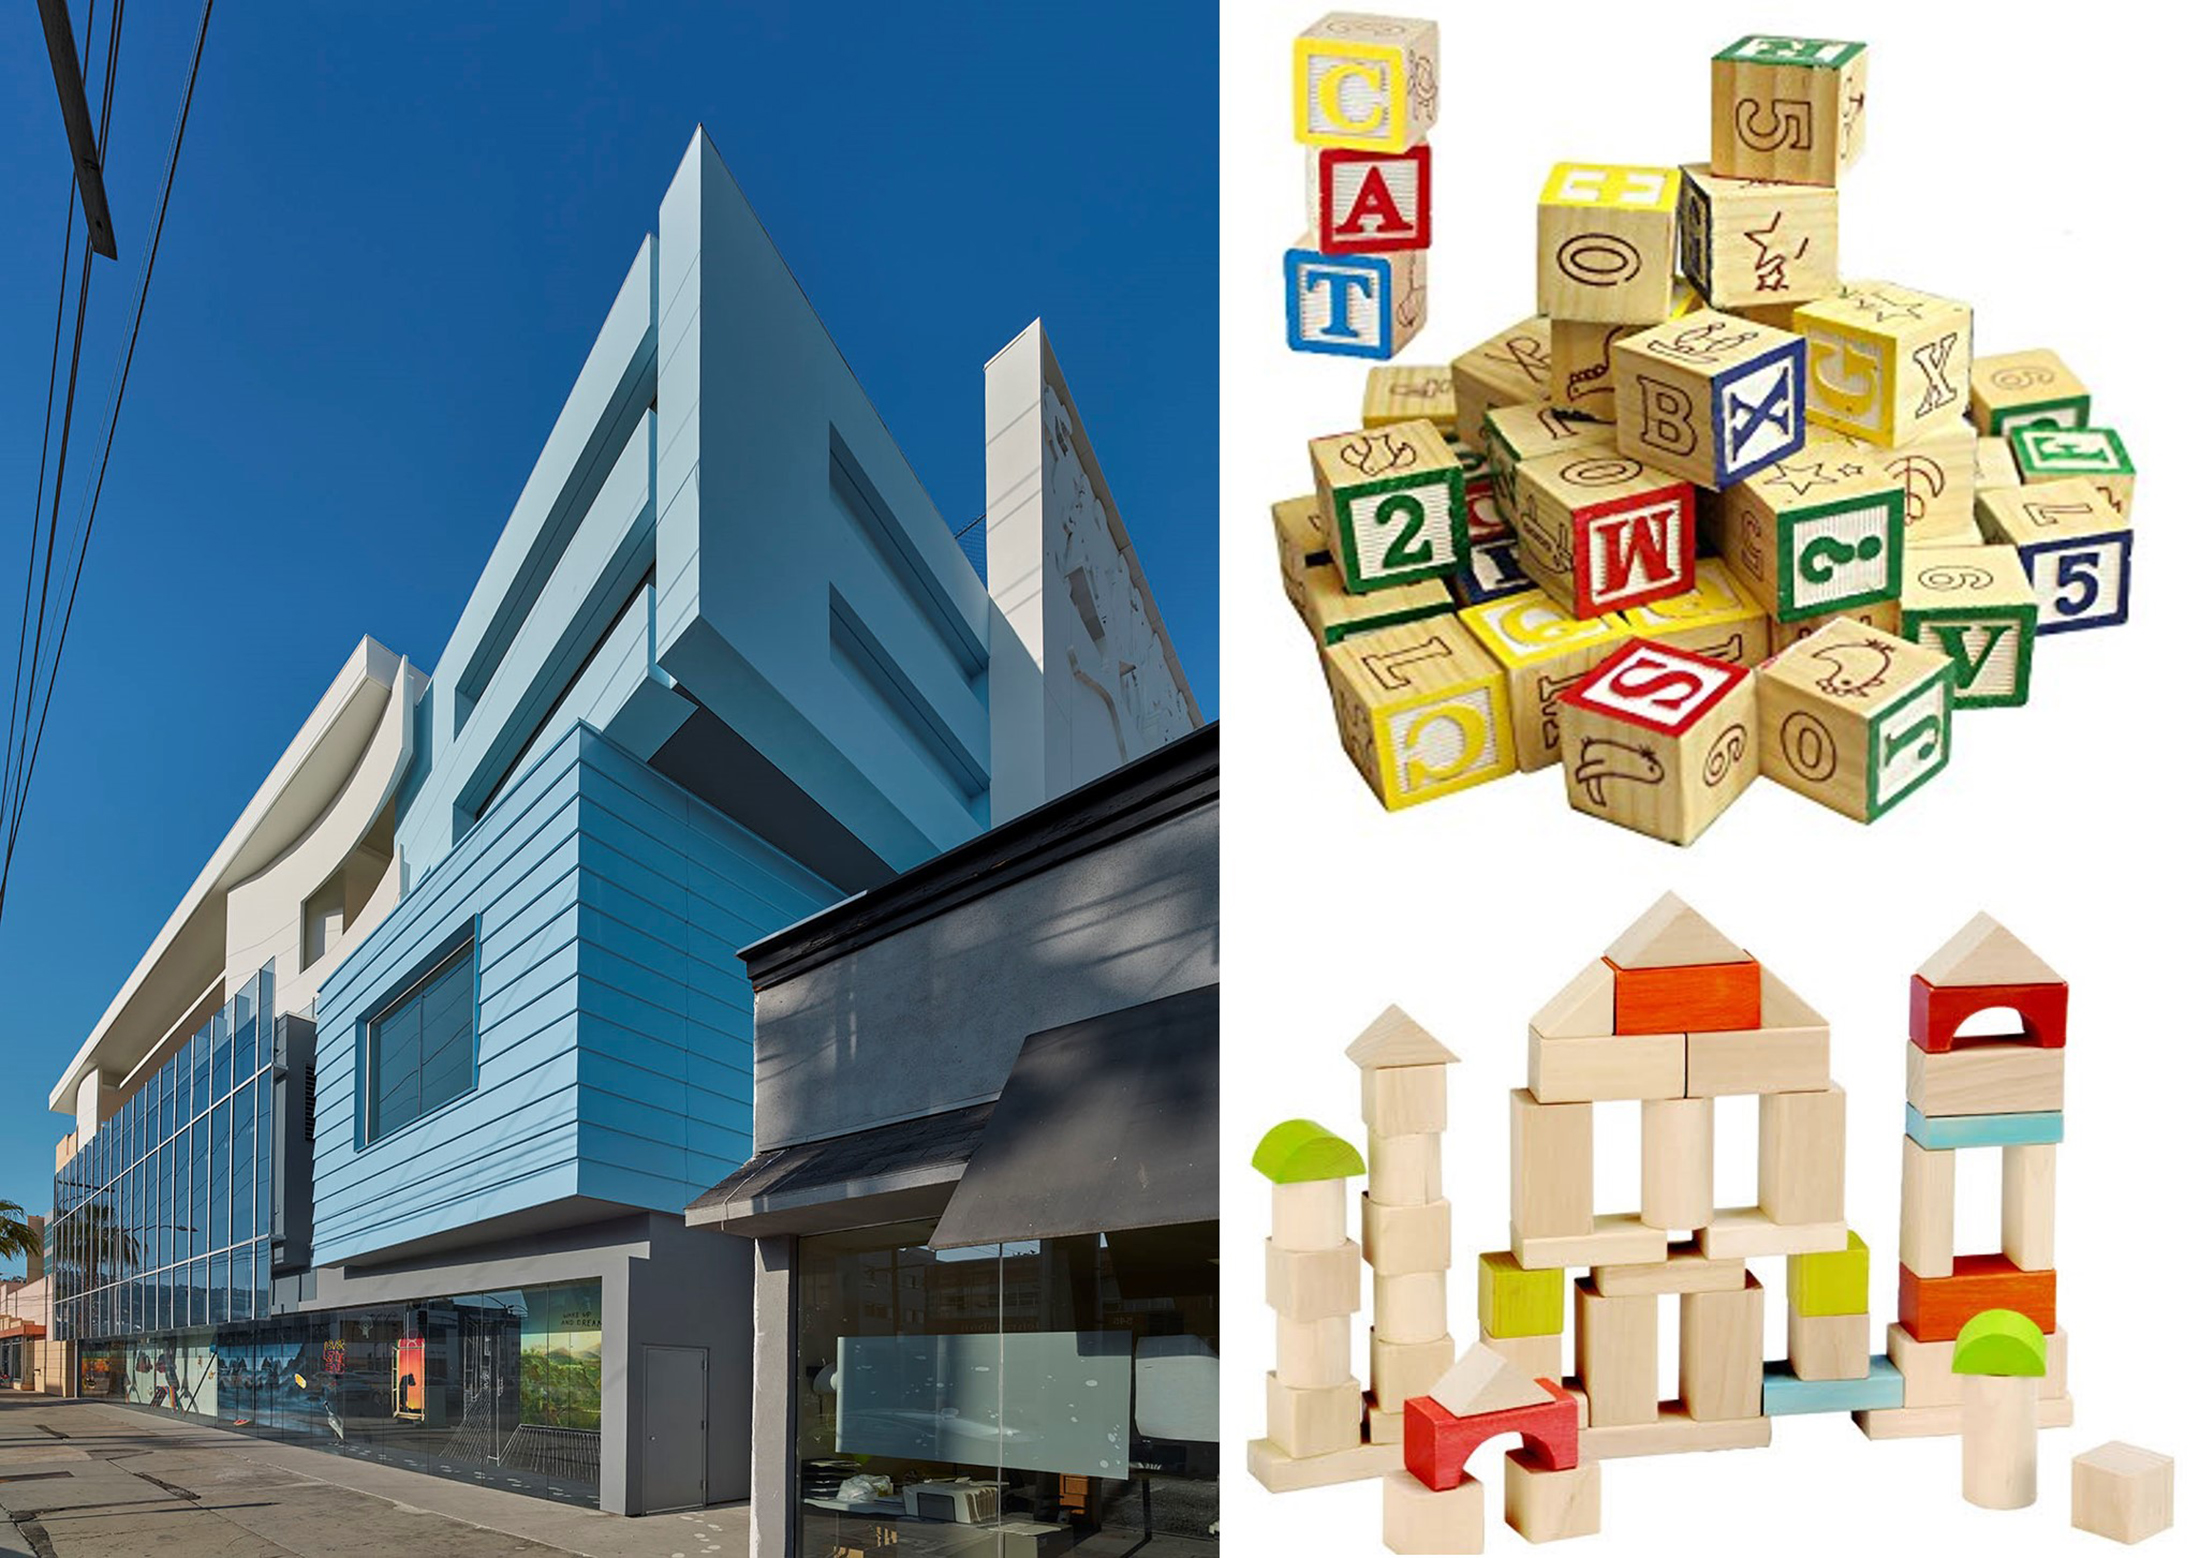 The architecture of the new CEE campus has been inspired in part by children's art and toys such as alphabet and building blocks.